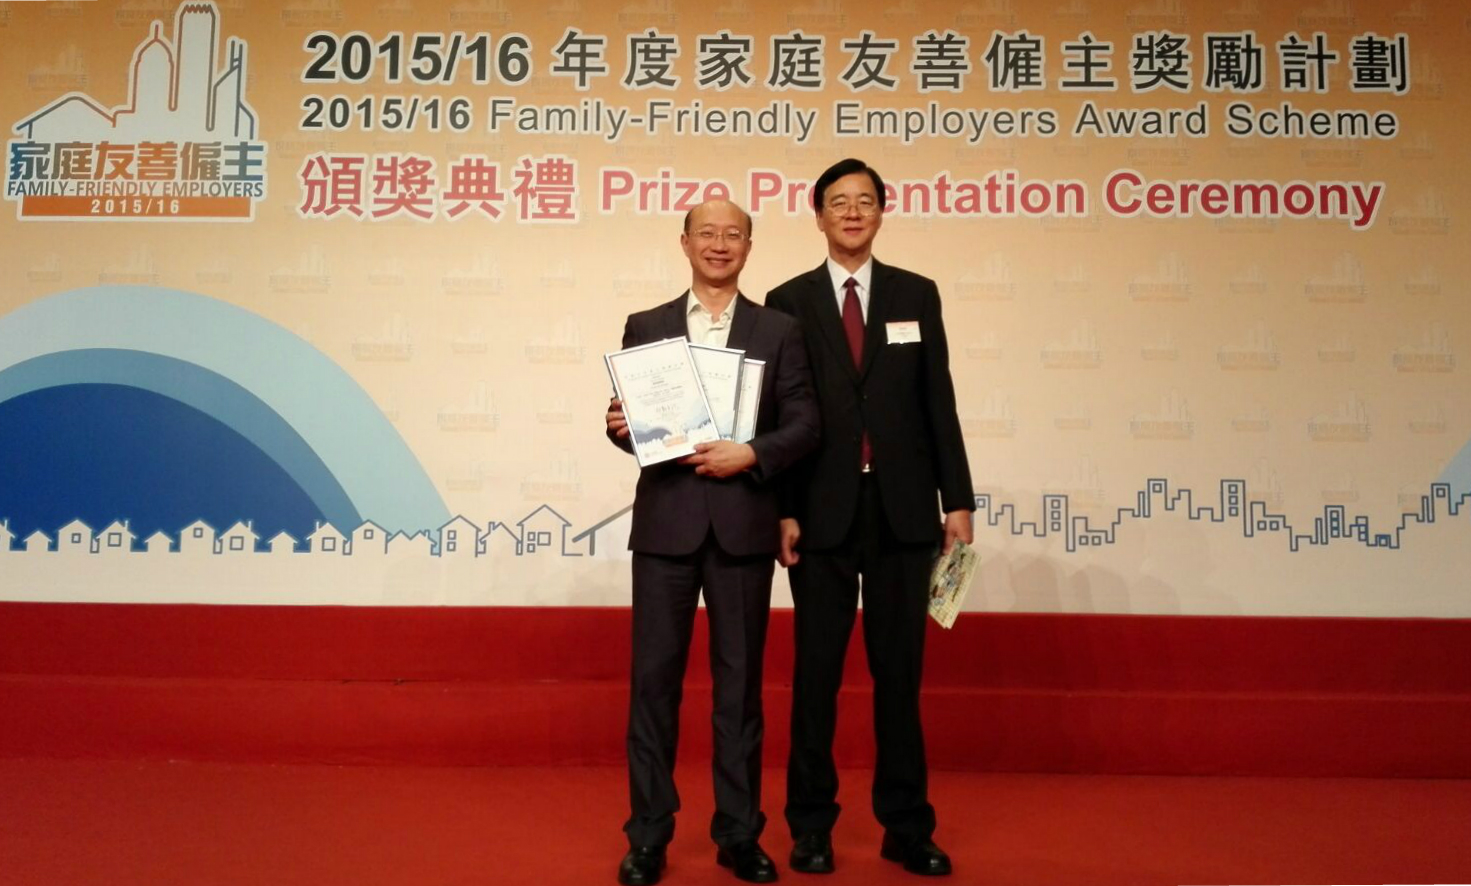 Hongkongstorage - Family Friendly Employers Award Scheme 2015/16